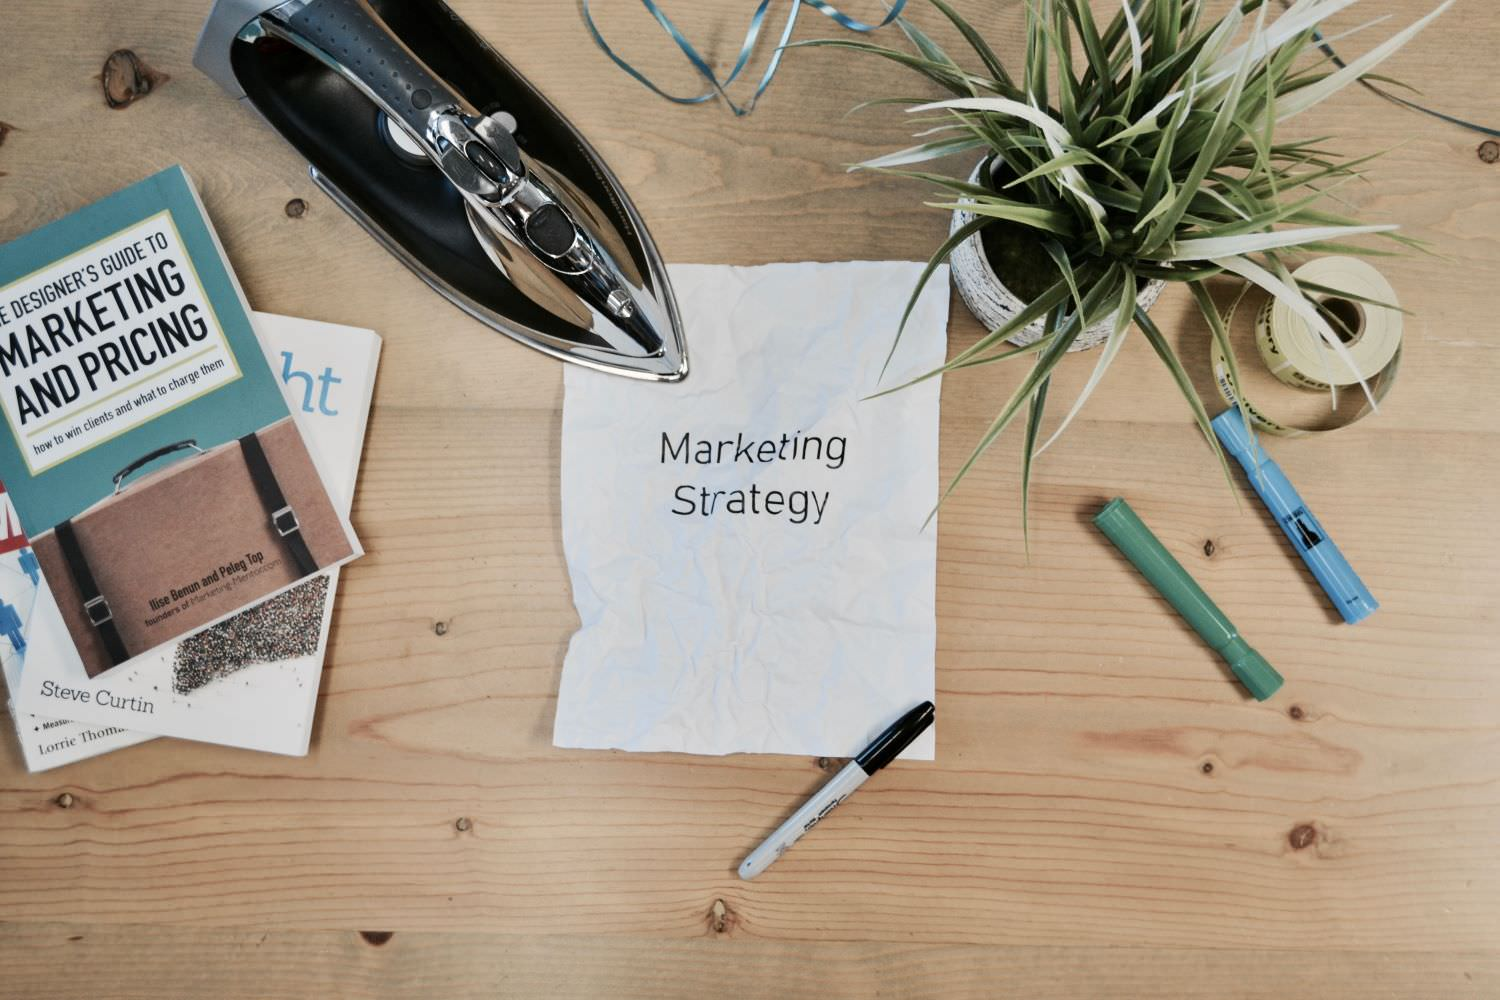 How to promote your business online: digital marketing for beginners